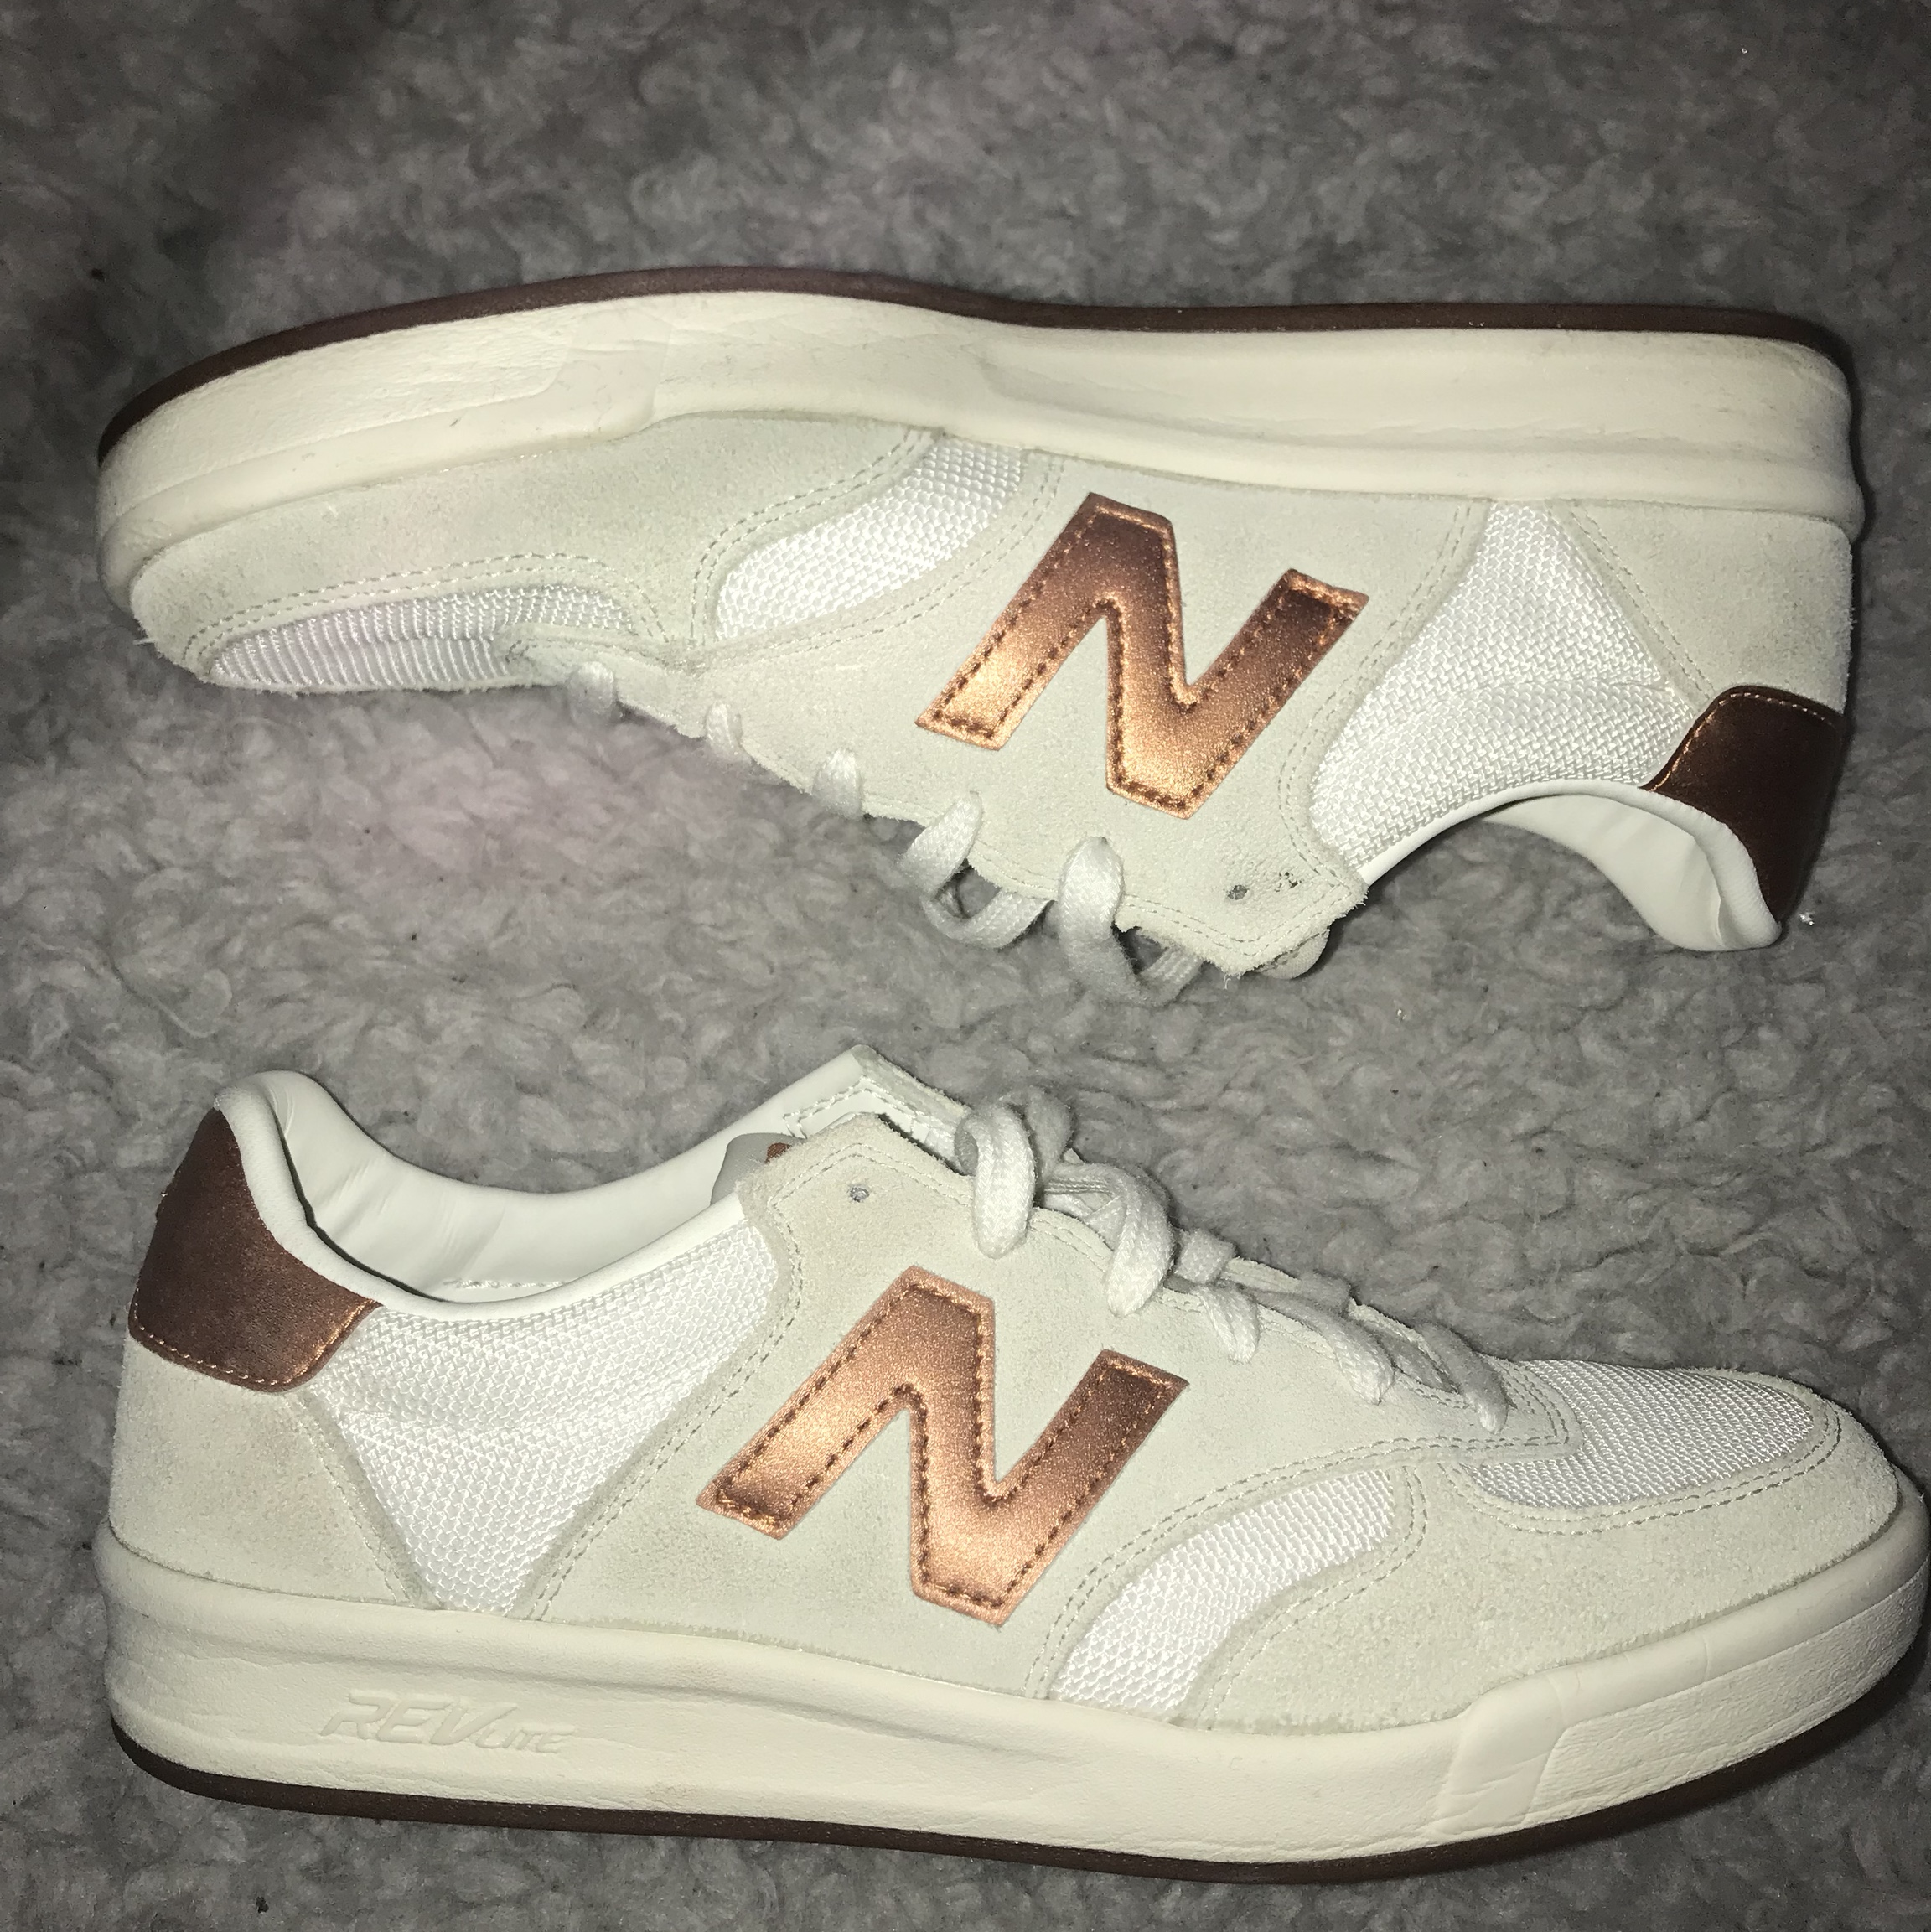 new balance 300 suede court trainers with copper trim in white